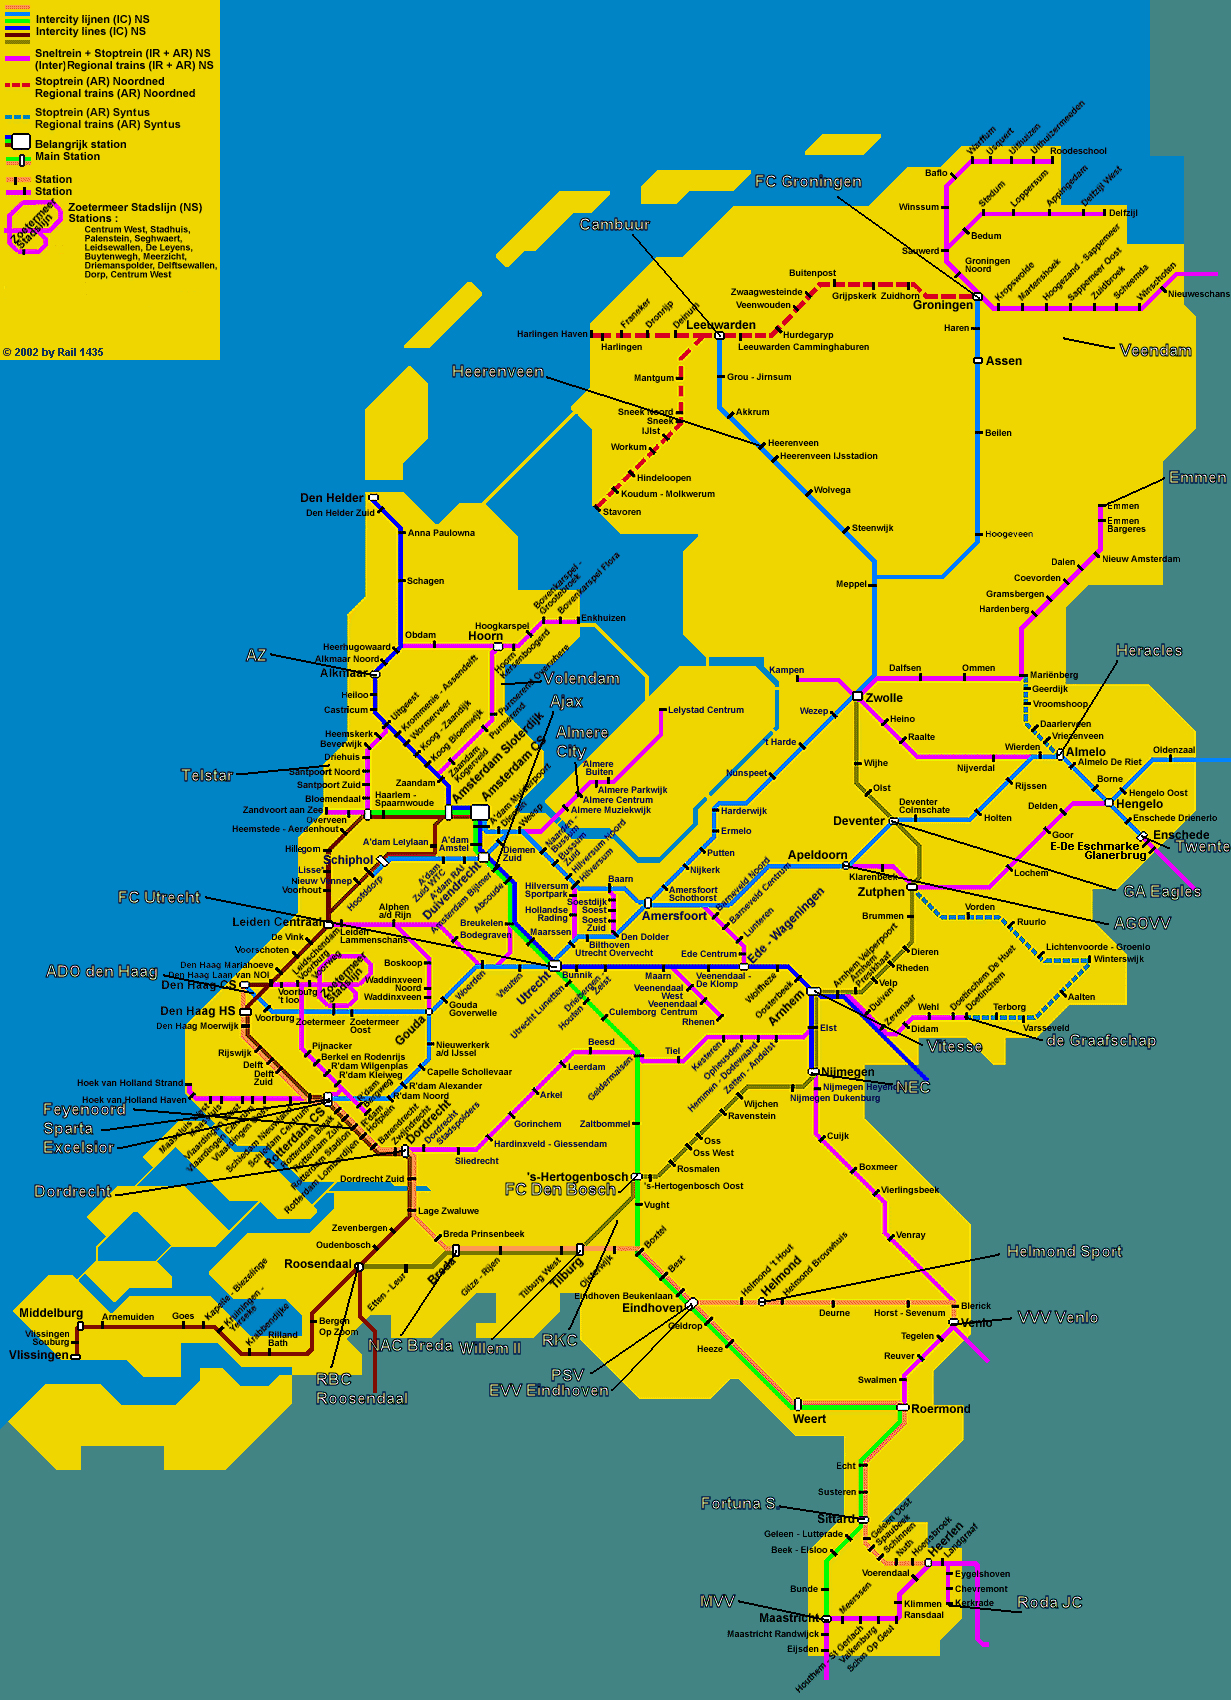 Detailed Train Map Of Netherlands Holland Netherlands Europe - Netherlands map